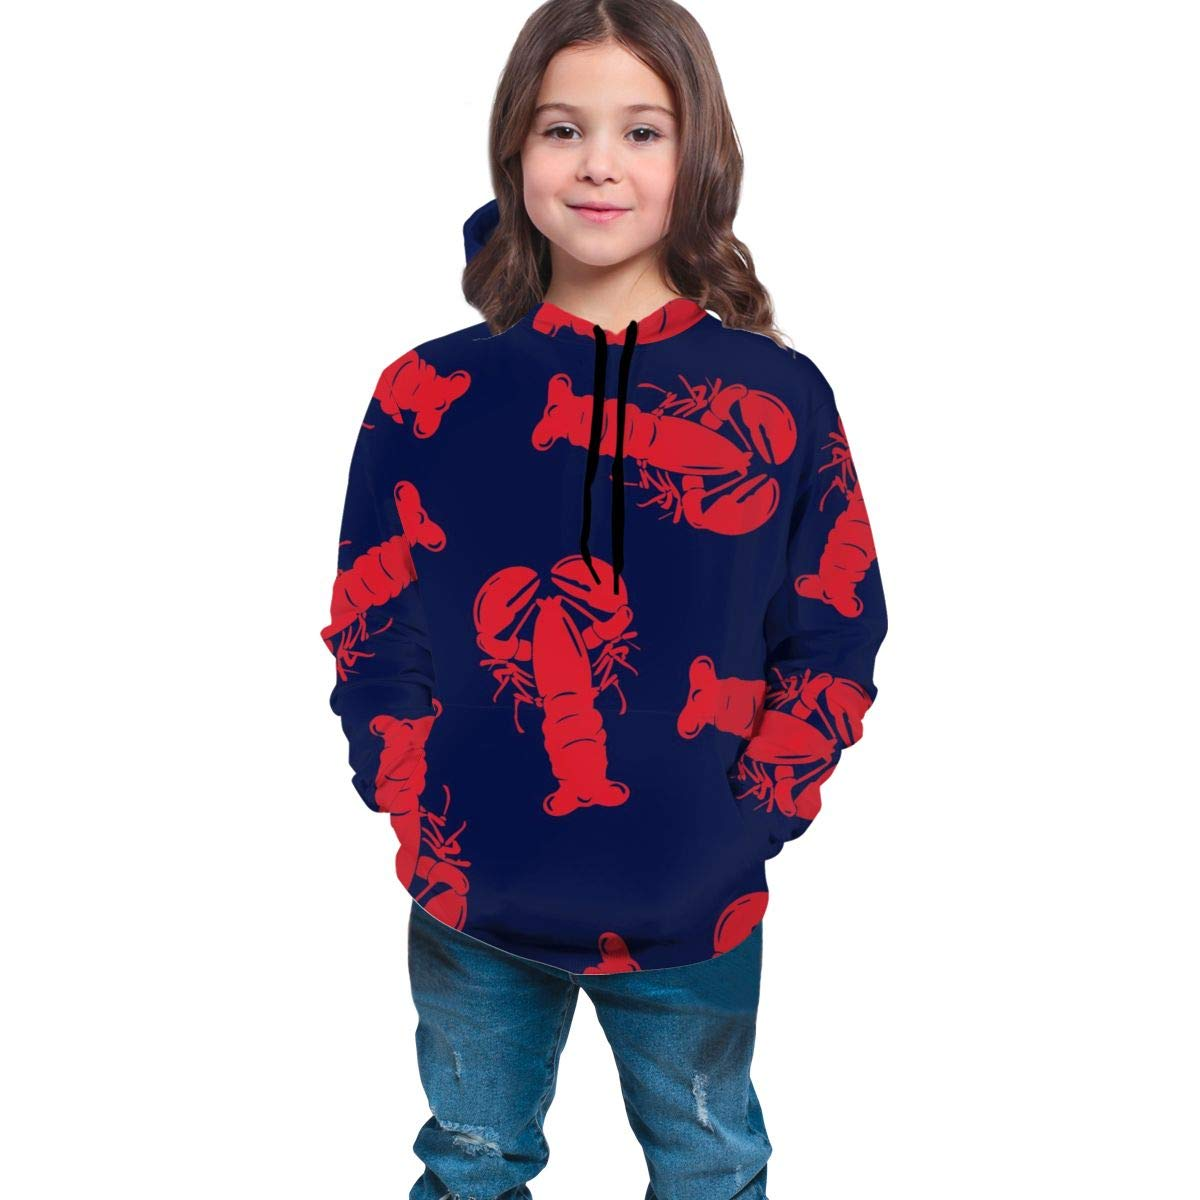 Funny Cool Pullover Hoodie Hooded Sweatshirt for Boys Girls Teens Junior, Long Sleeves Fitted 3D Pattern Print Sports Outwear (Boardshorts Red Lobster Hoodies) by YongColer